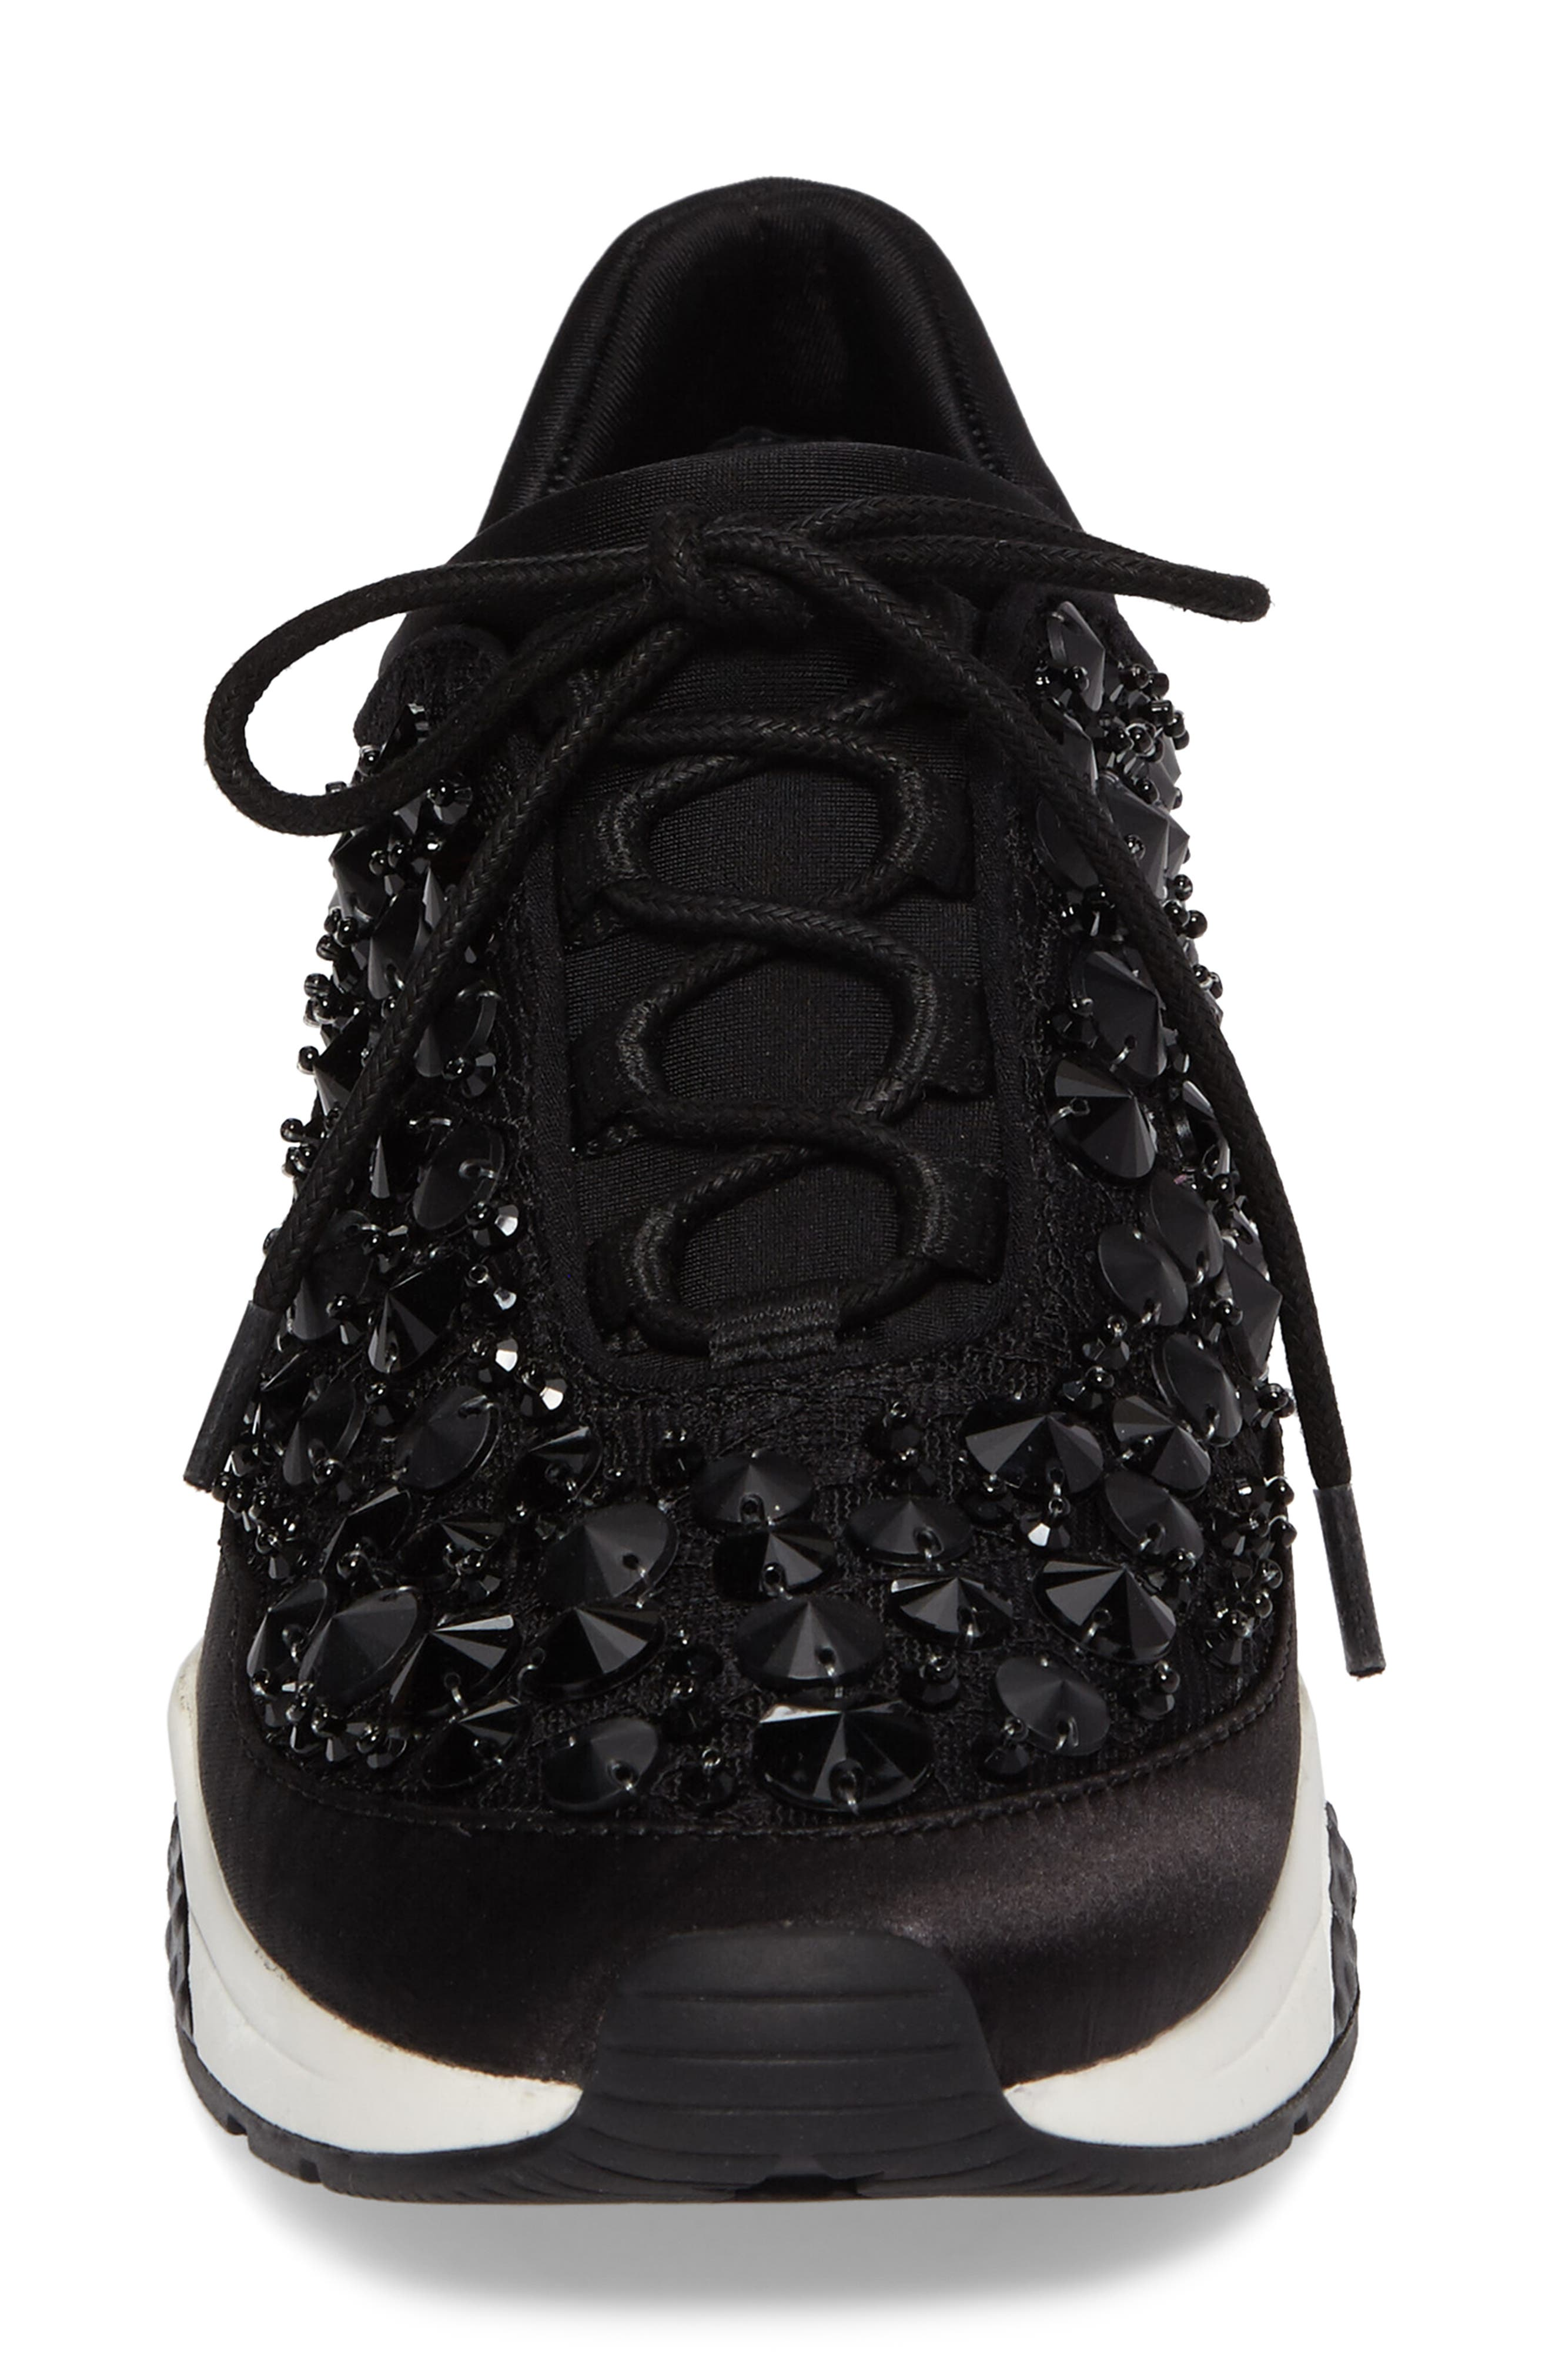 Muse Beads Sneaker,                             Alternate thumbnail 4, color,                             Black/ Black Fabric